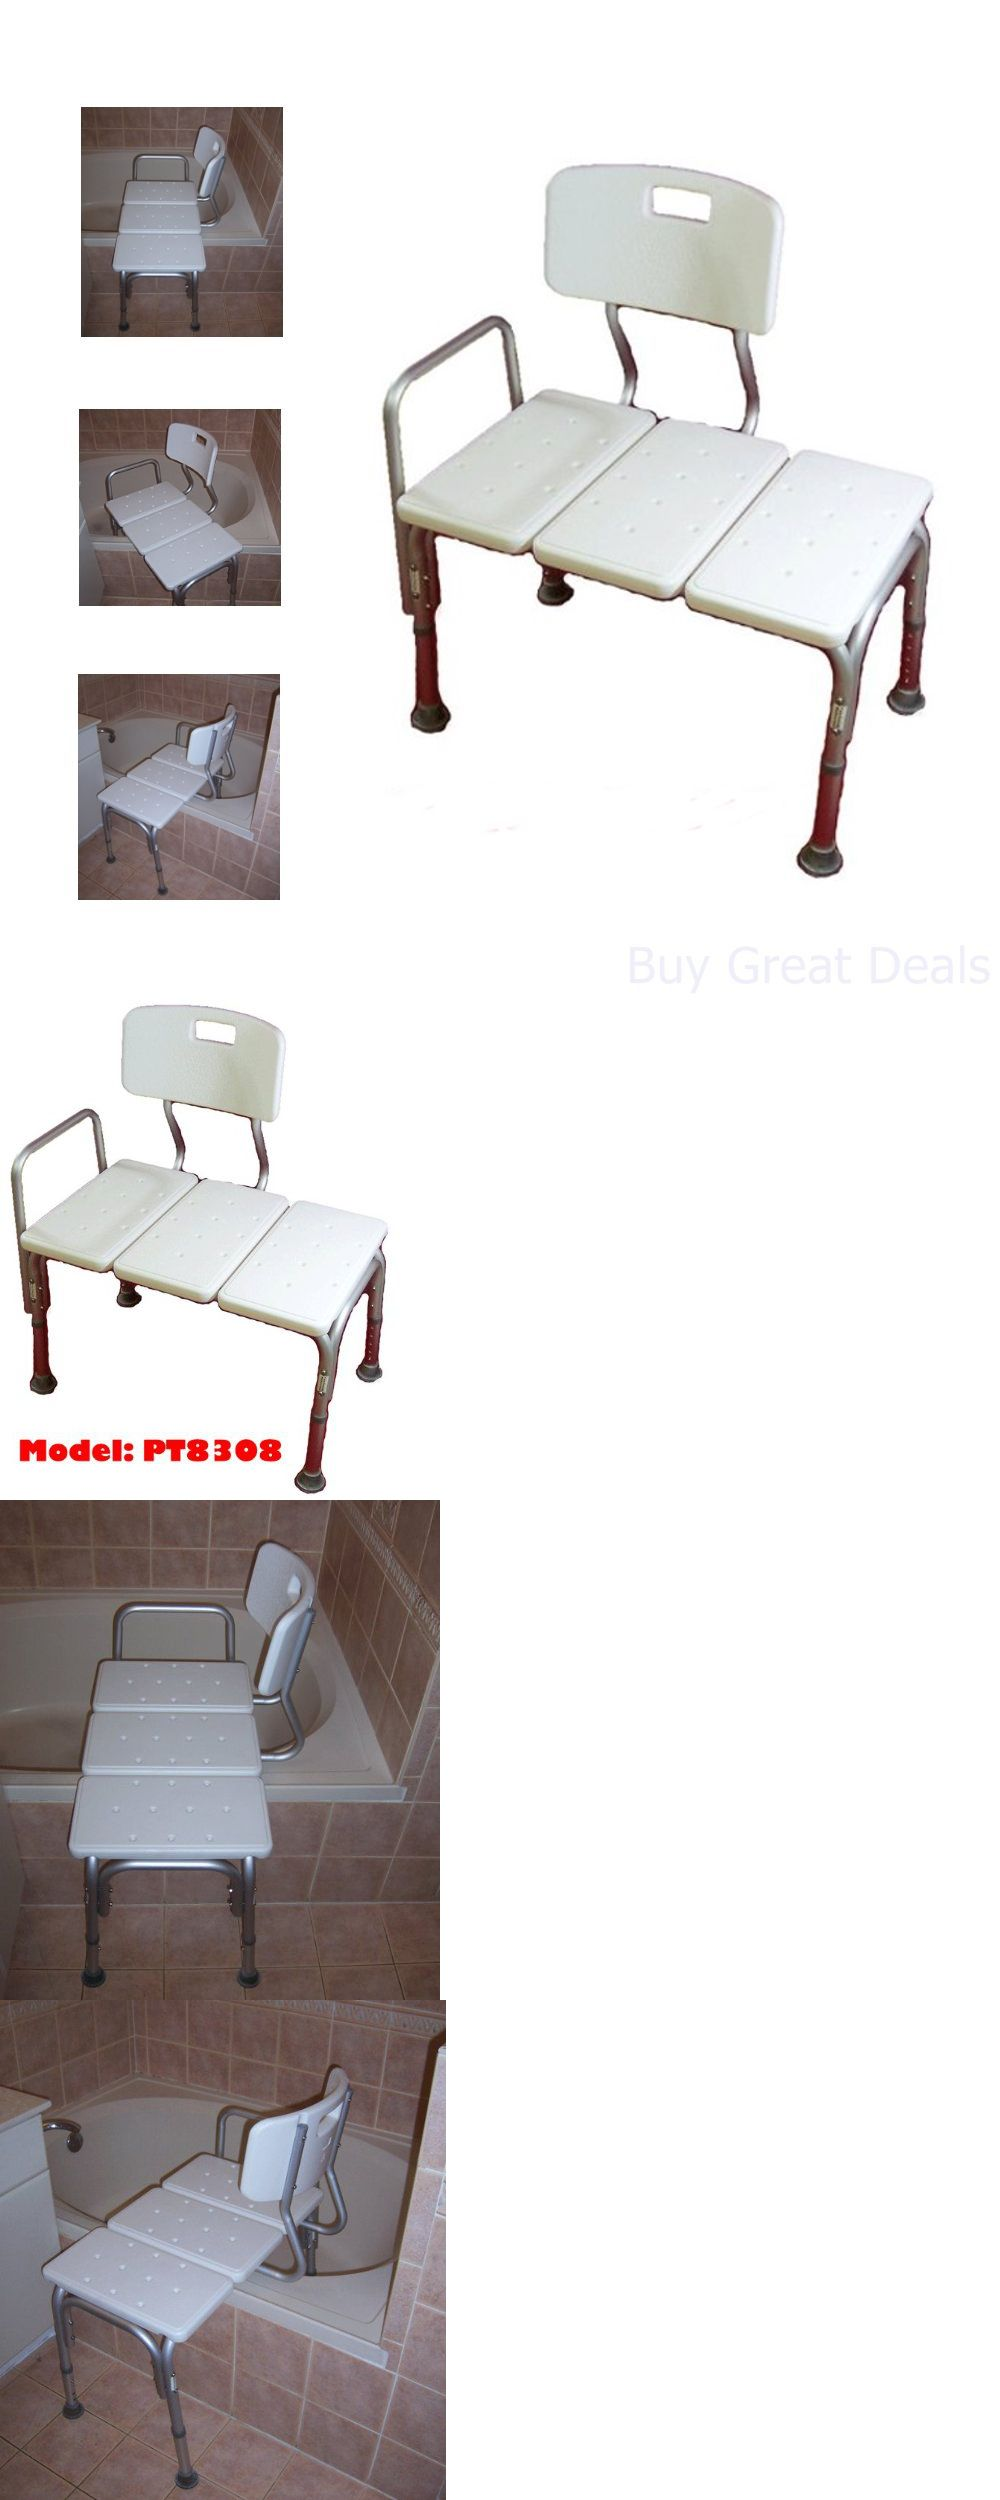 Transfer Boards and Benches: Bathtub Shower Aids Transfer From ...